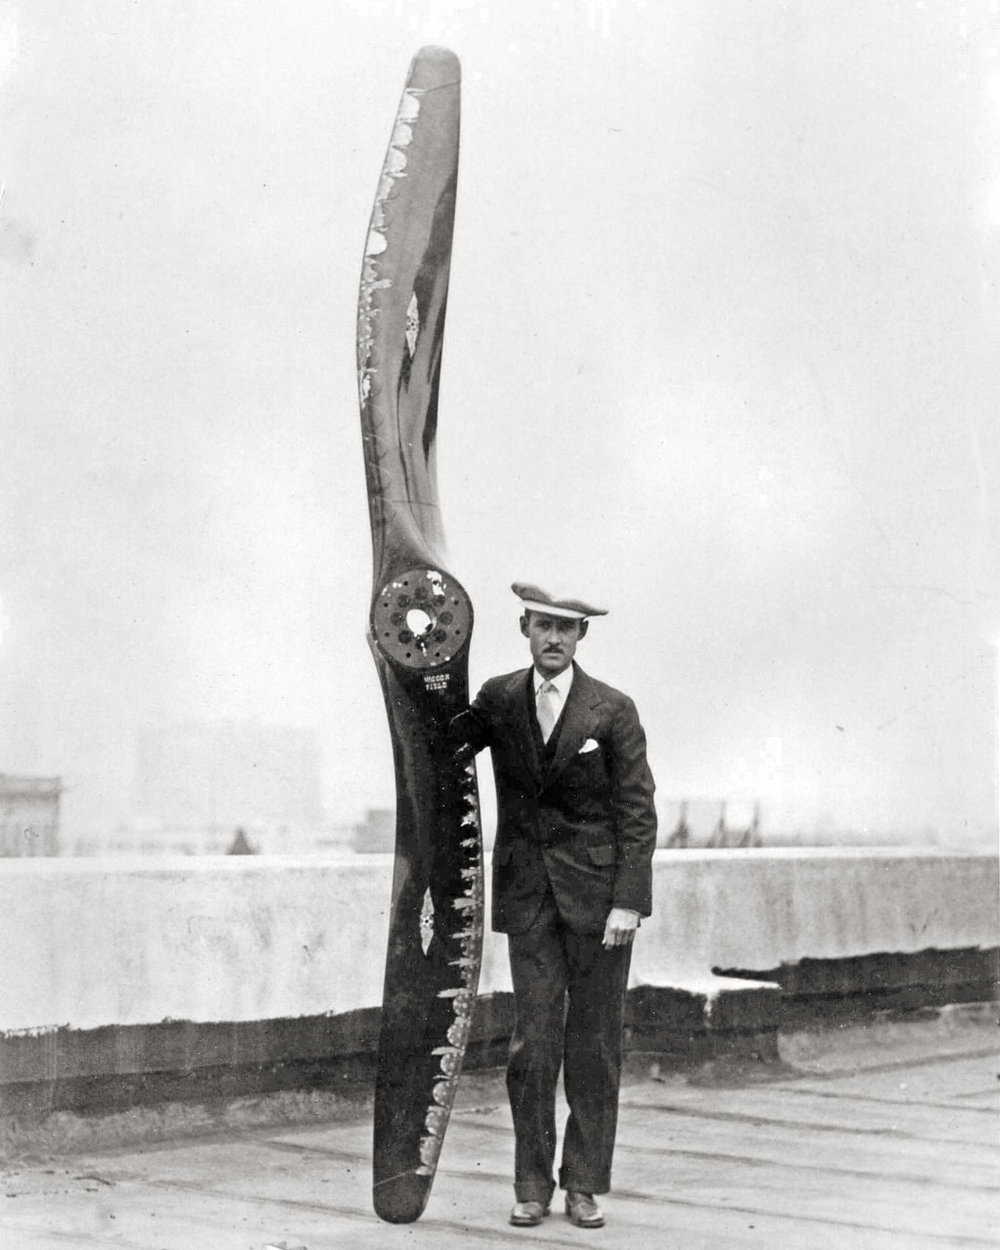 The World Cruisers used two types of propellers: oak with the pontoons, because it is very sturdy and resistant to sea spray; and walnut with the wheels, because it is lighter and better propeller wood. They were made by the Hamilton Aero Company.  (Museum of Flight)